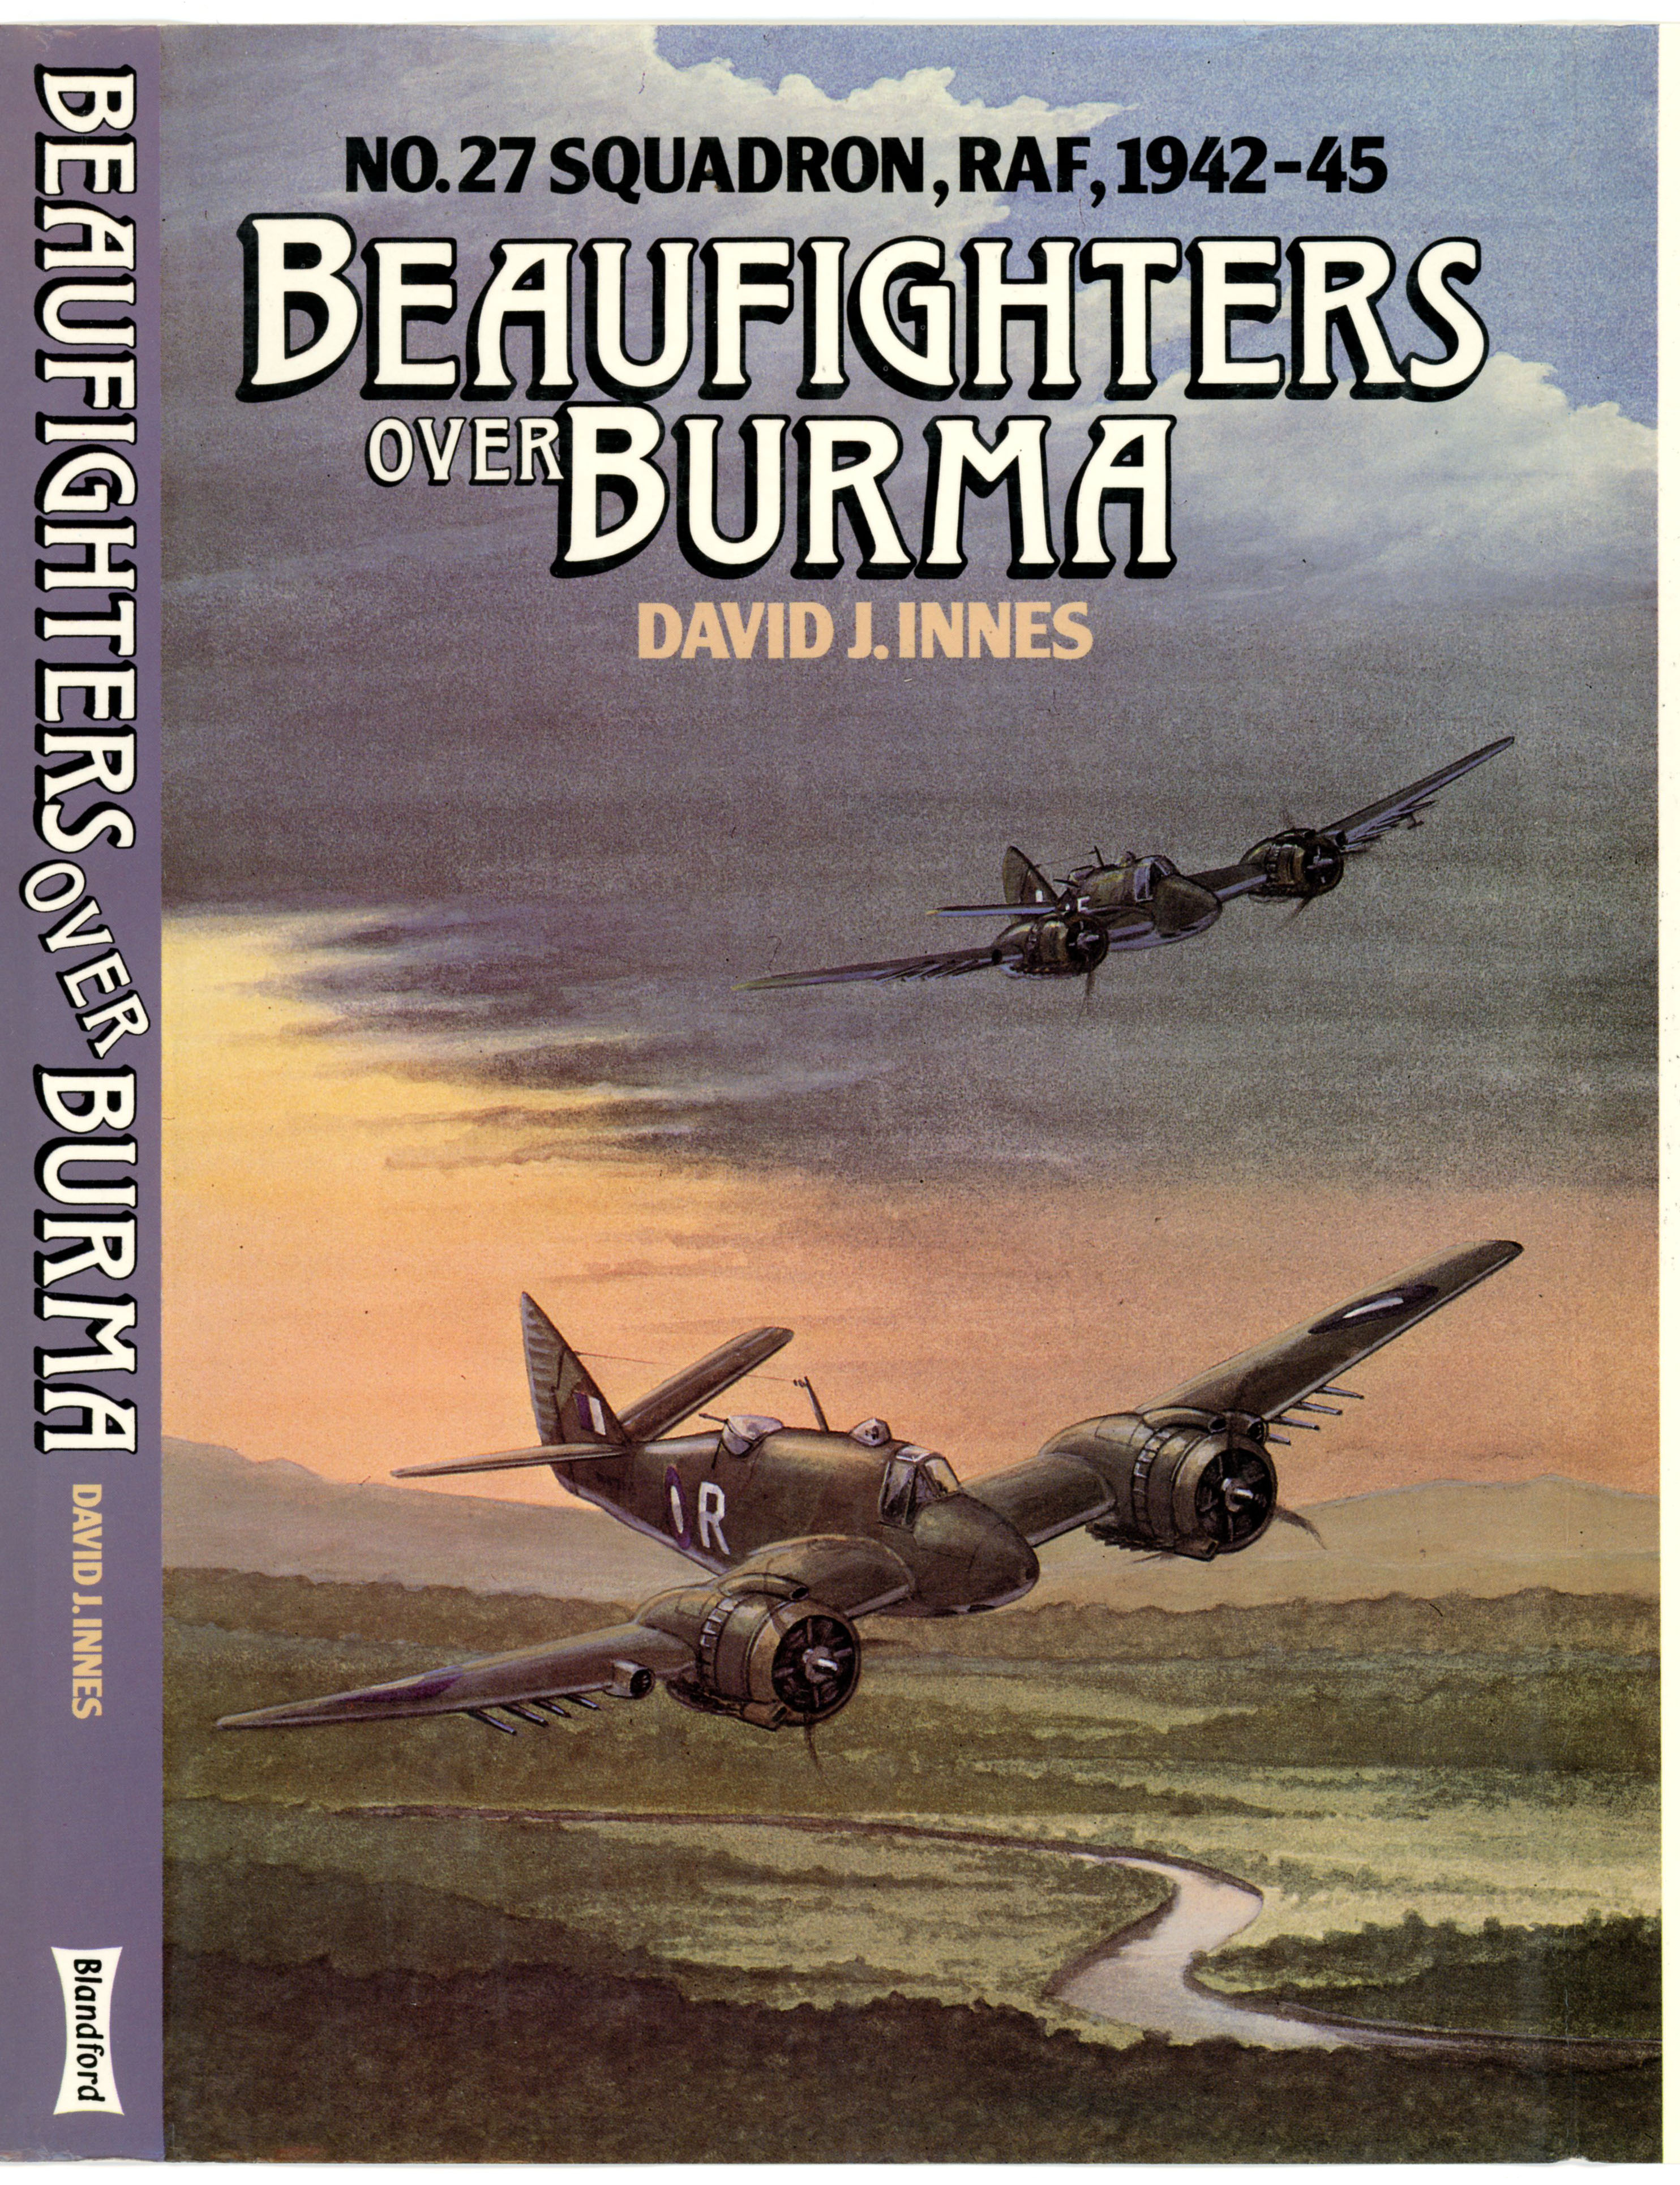 Number 27 Squadron Royal Air Force – Literary Art and